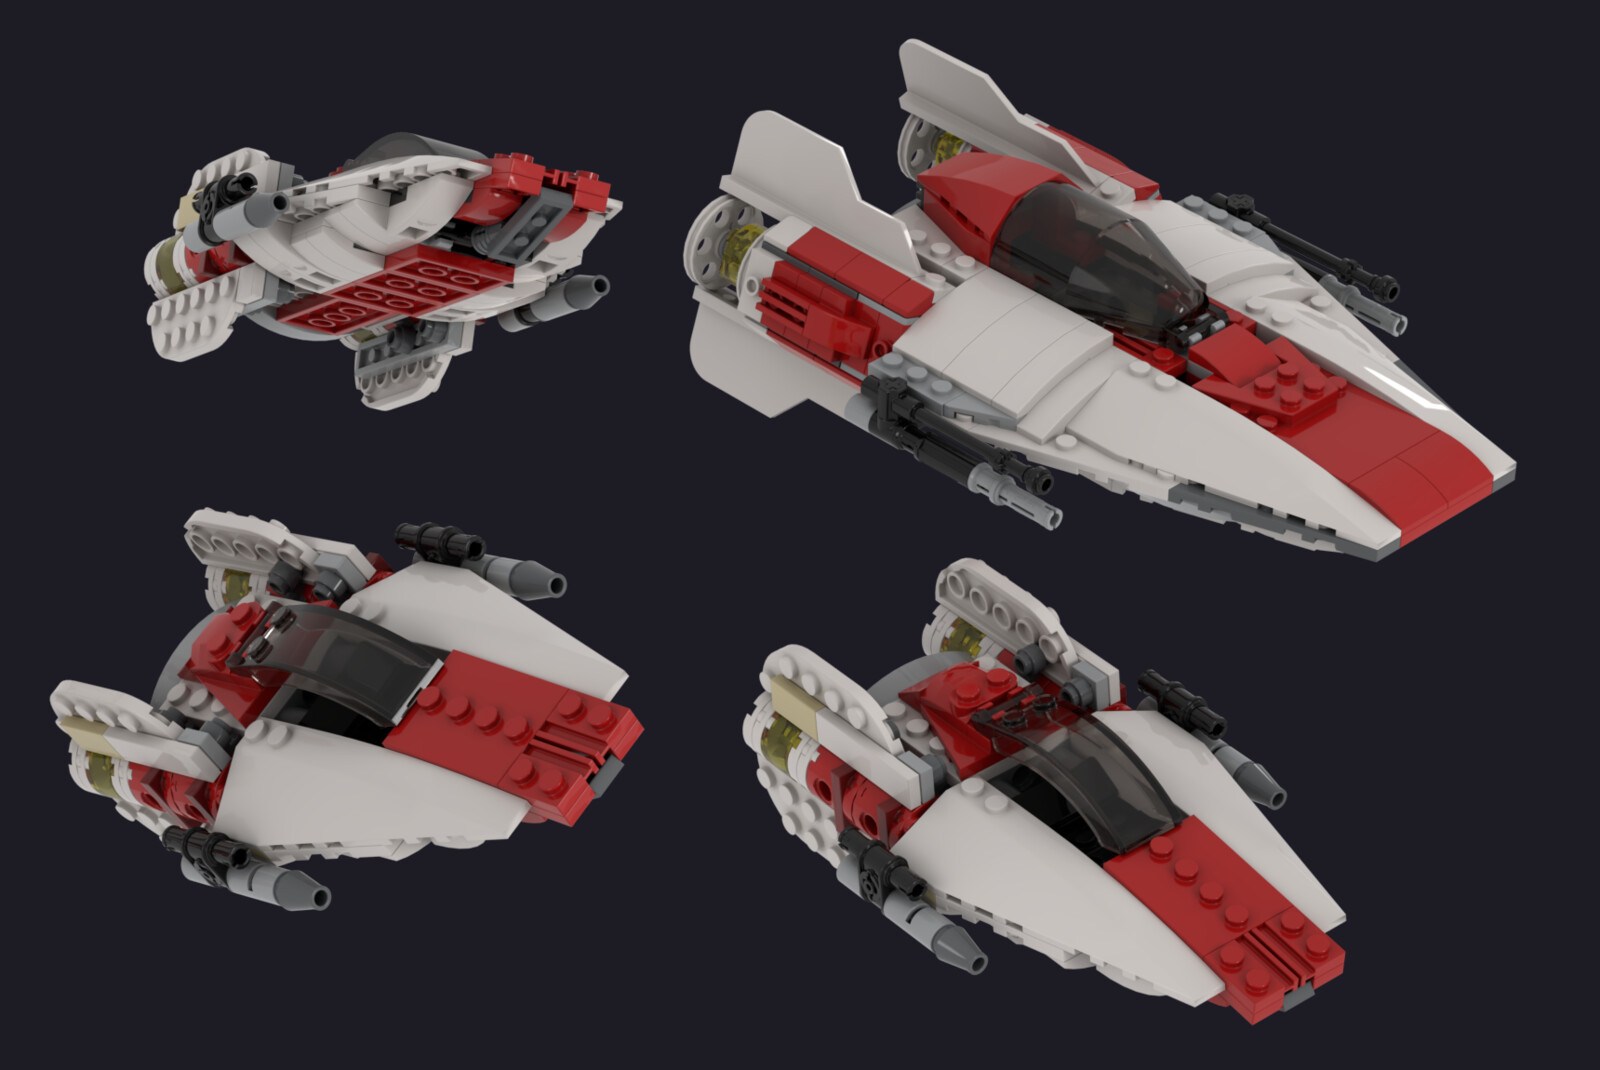 The big A-Wing in this render is an official LEGO design for comparison